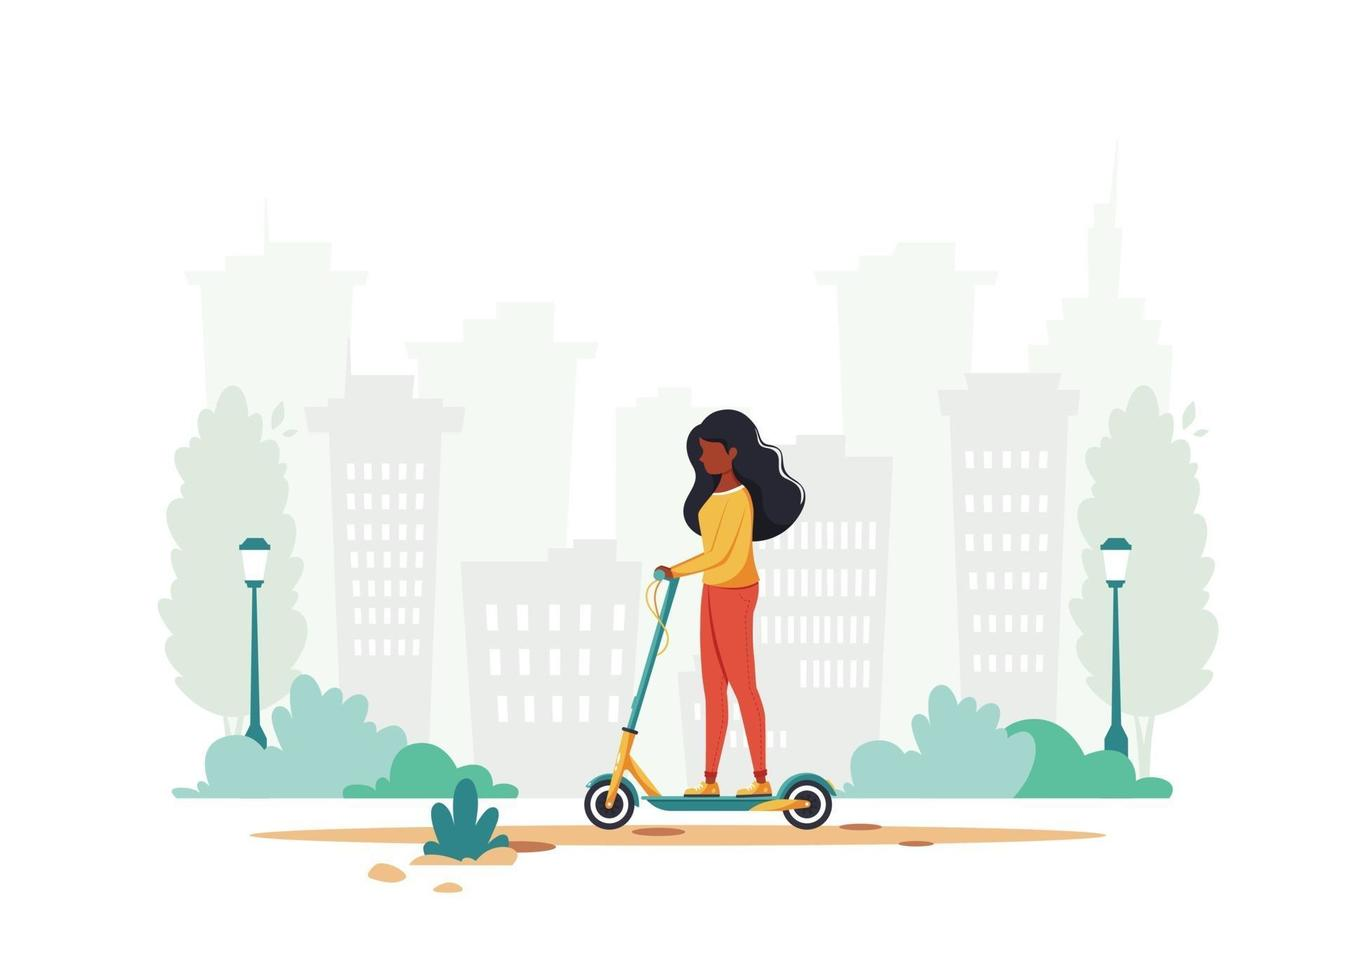 Black woman riding electric kick scooter. Eco transport concept. Vector illustration